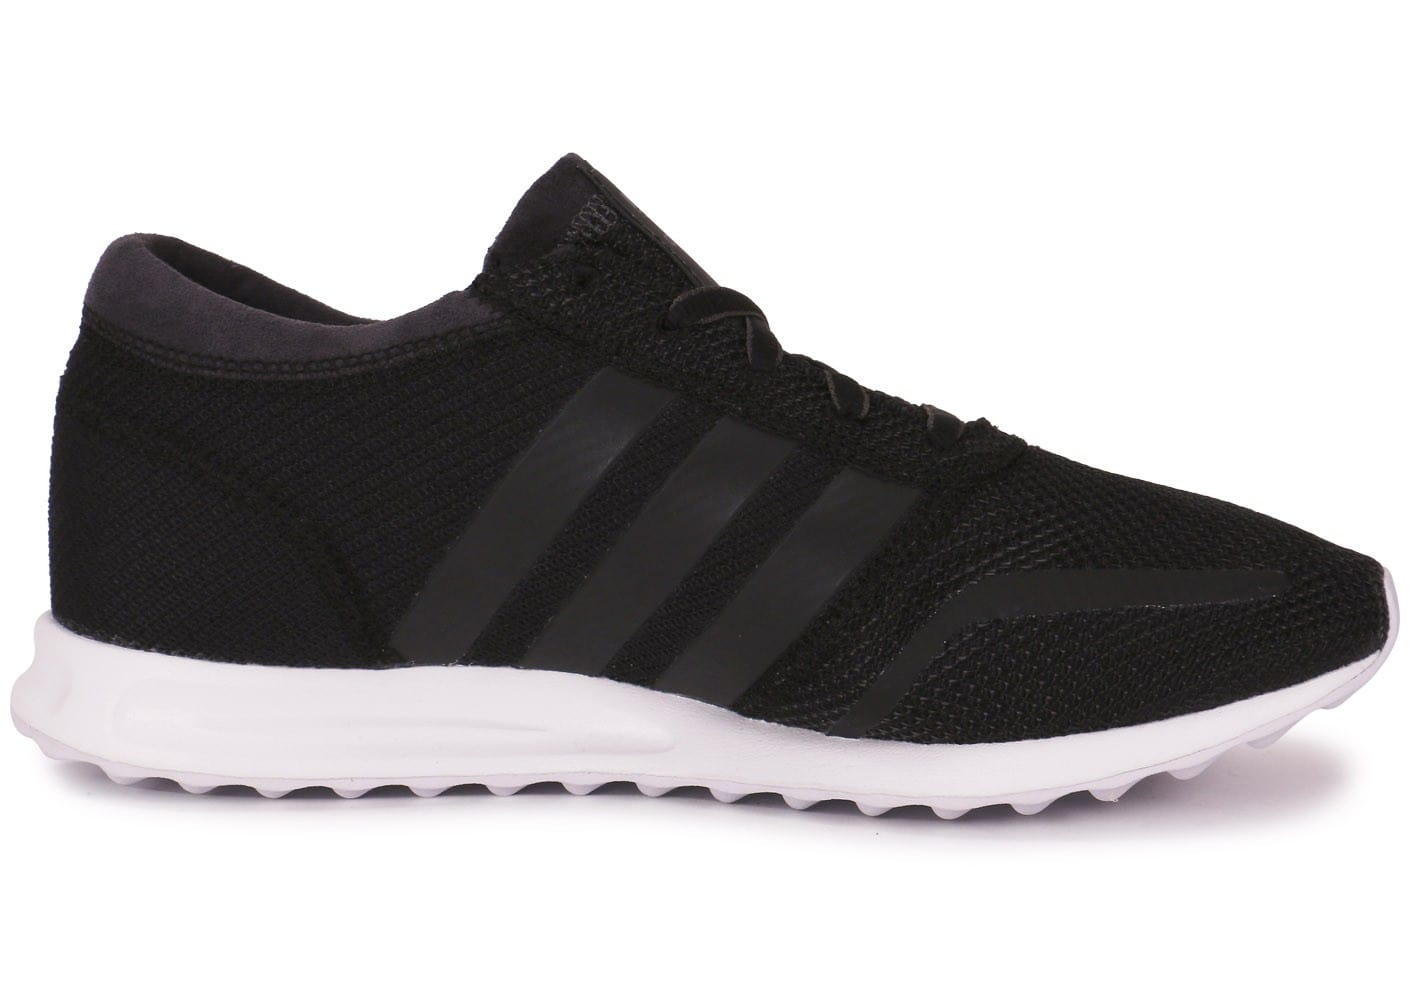 adidas Los Angeles noire Chaussures Baskets homme Chausport